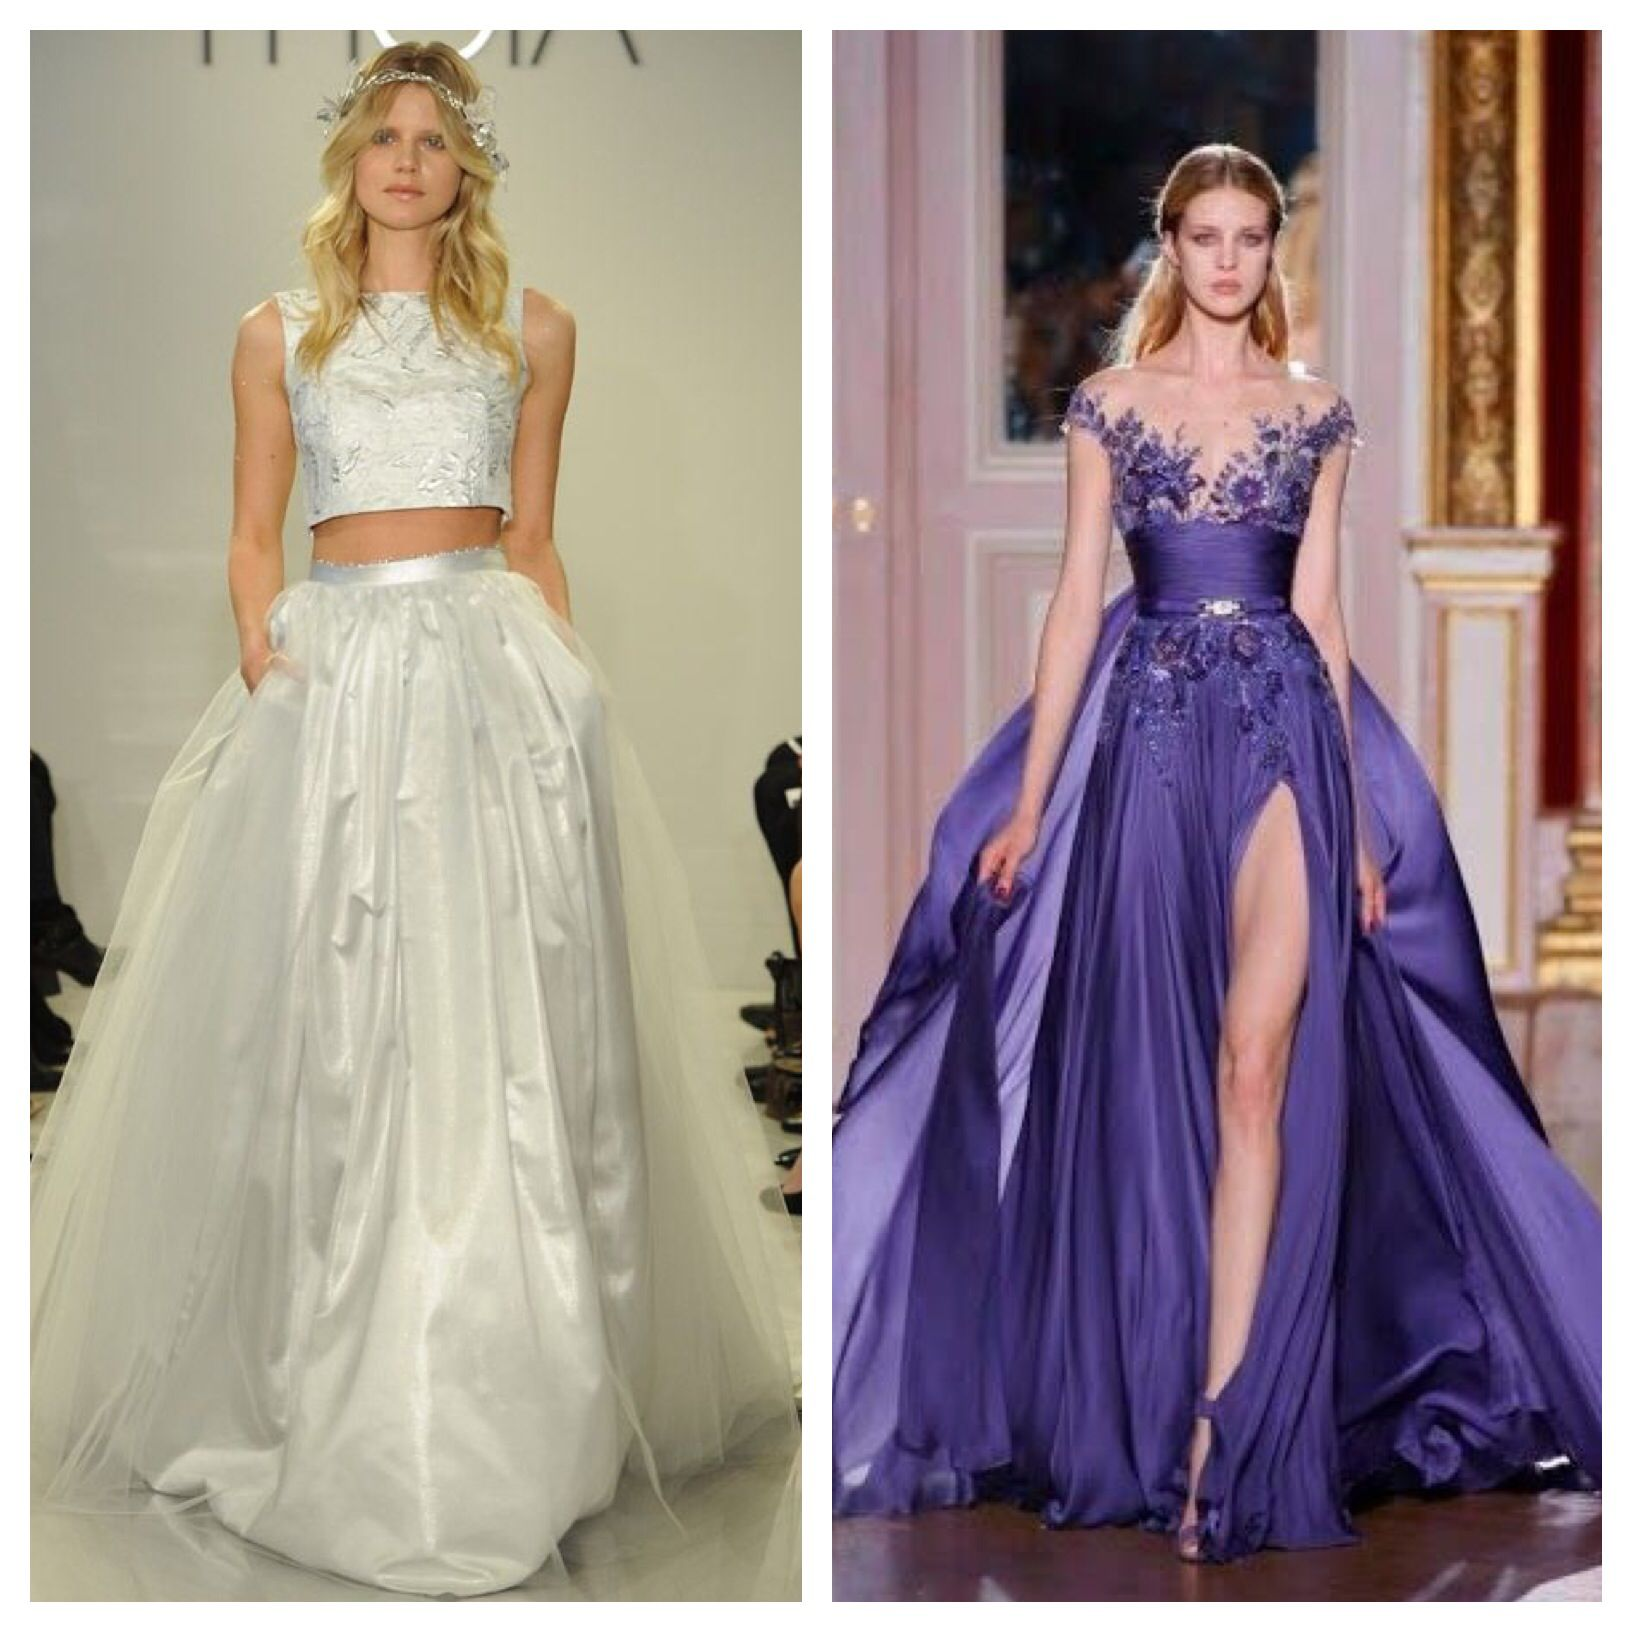 Nontraditional Wedding Dresses Cropped Wedding Dress Colored Wedding ...